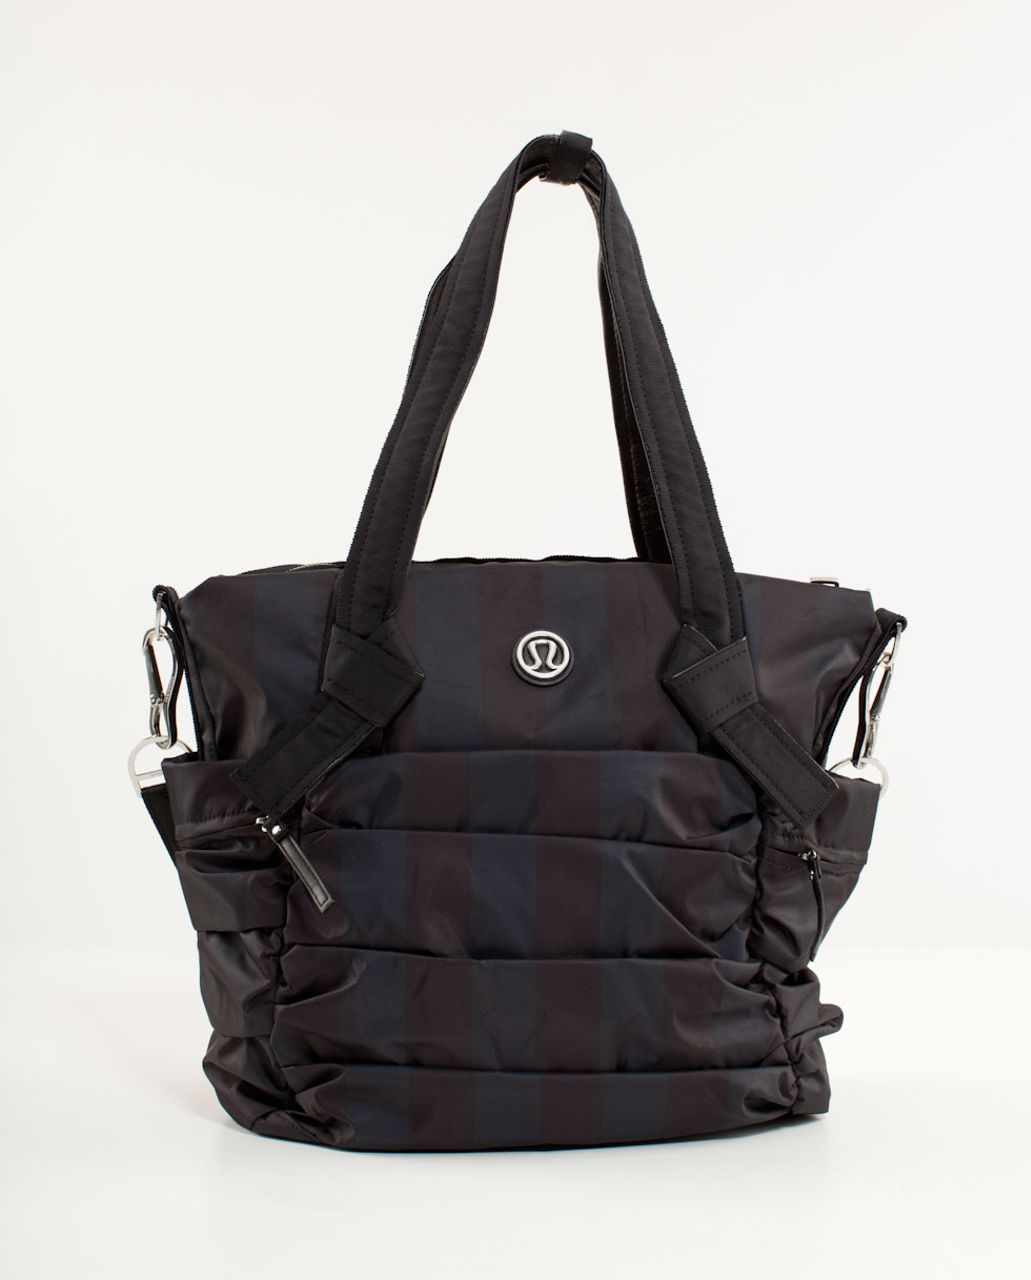 Lululemon Triumphant Tote - Deep Coal Black Wide Tonal Stripe